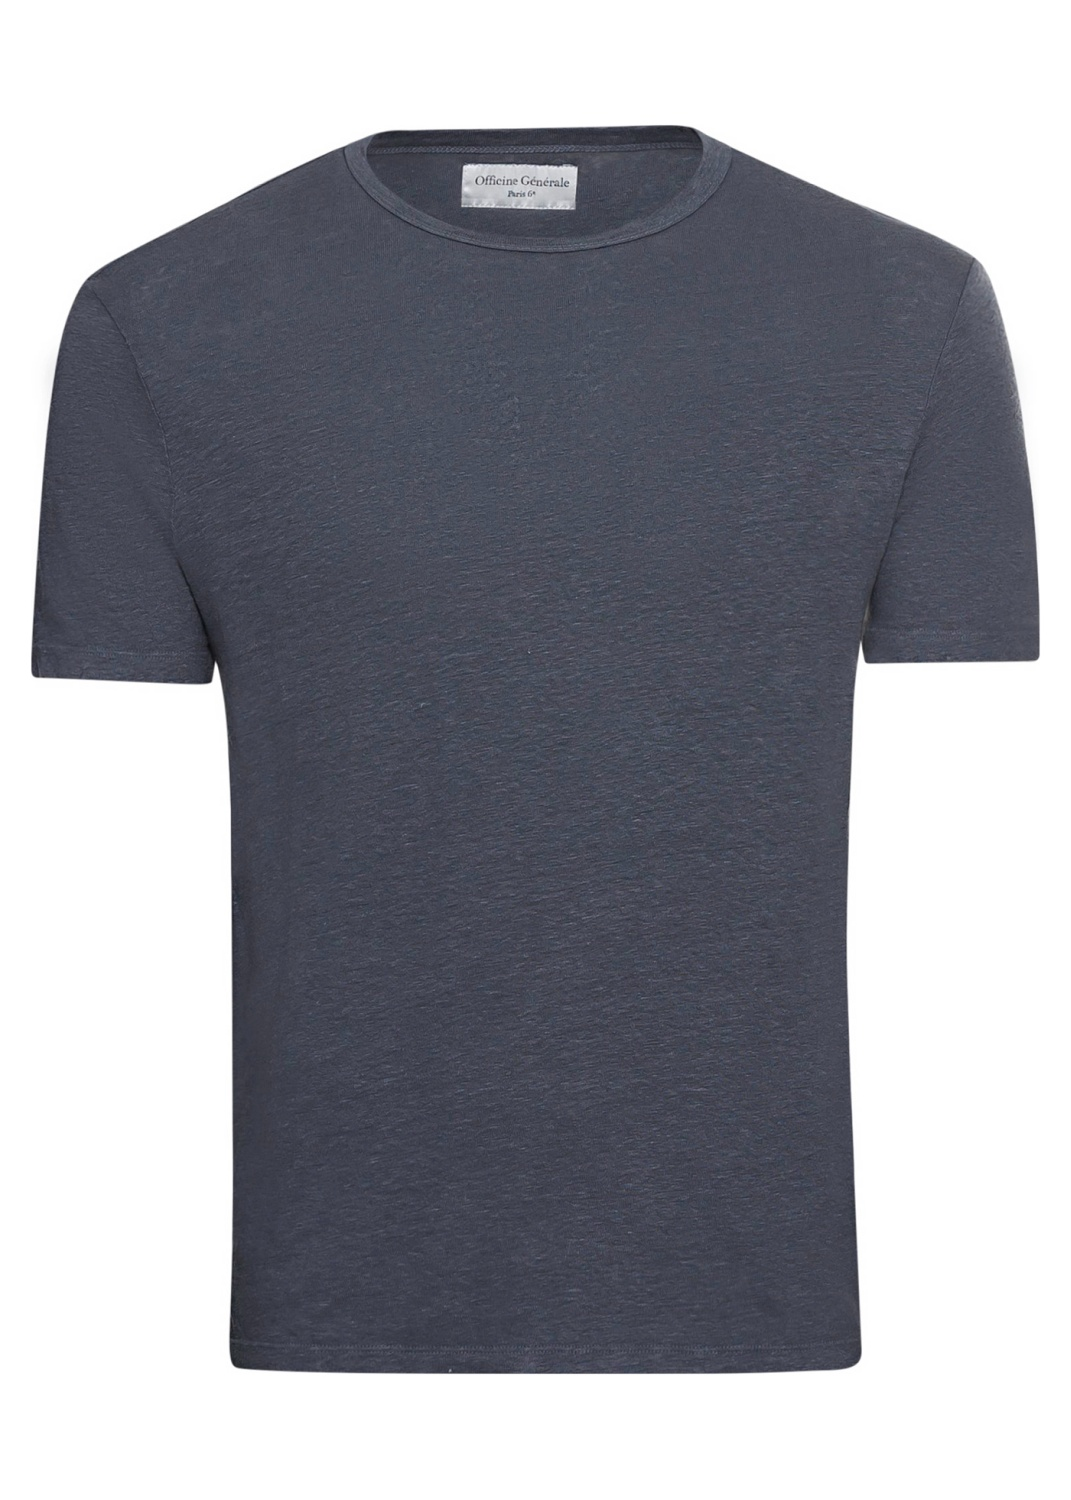 SS TEE PIECE DYED LINEN image number 0